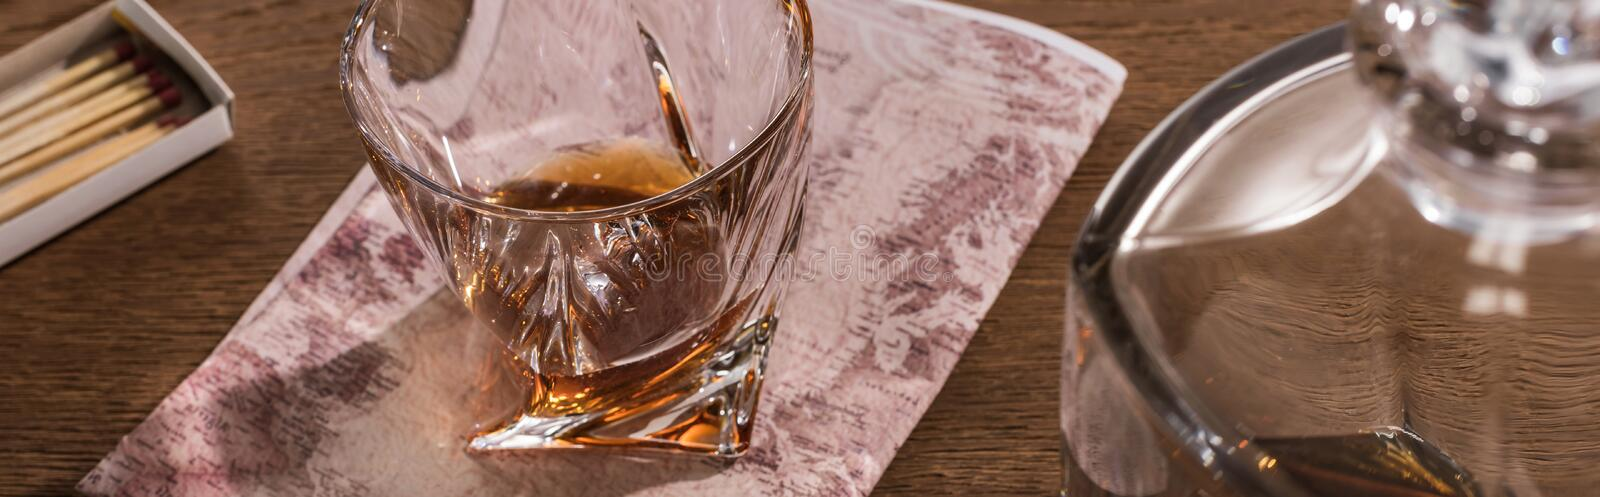 Glass of brandy on map with decanter and matches on wooden table, panoramic shot stock image